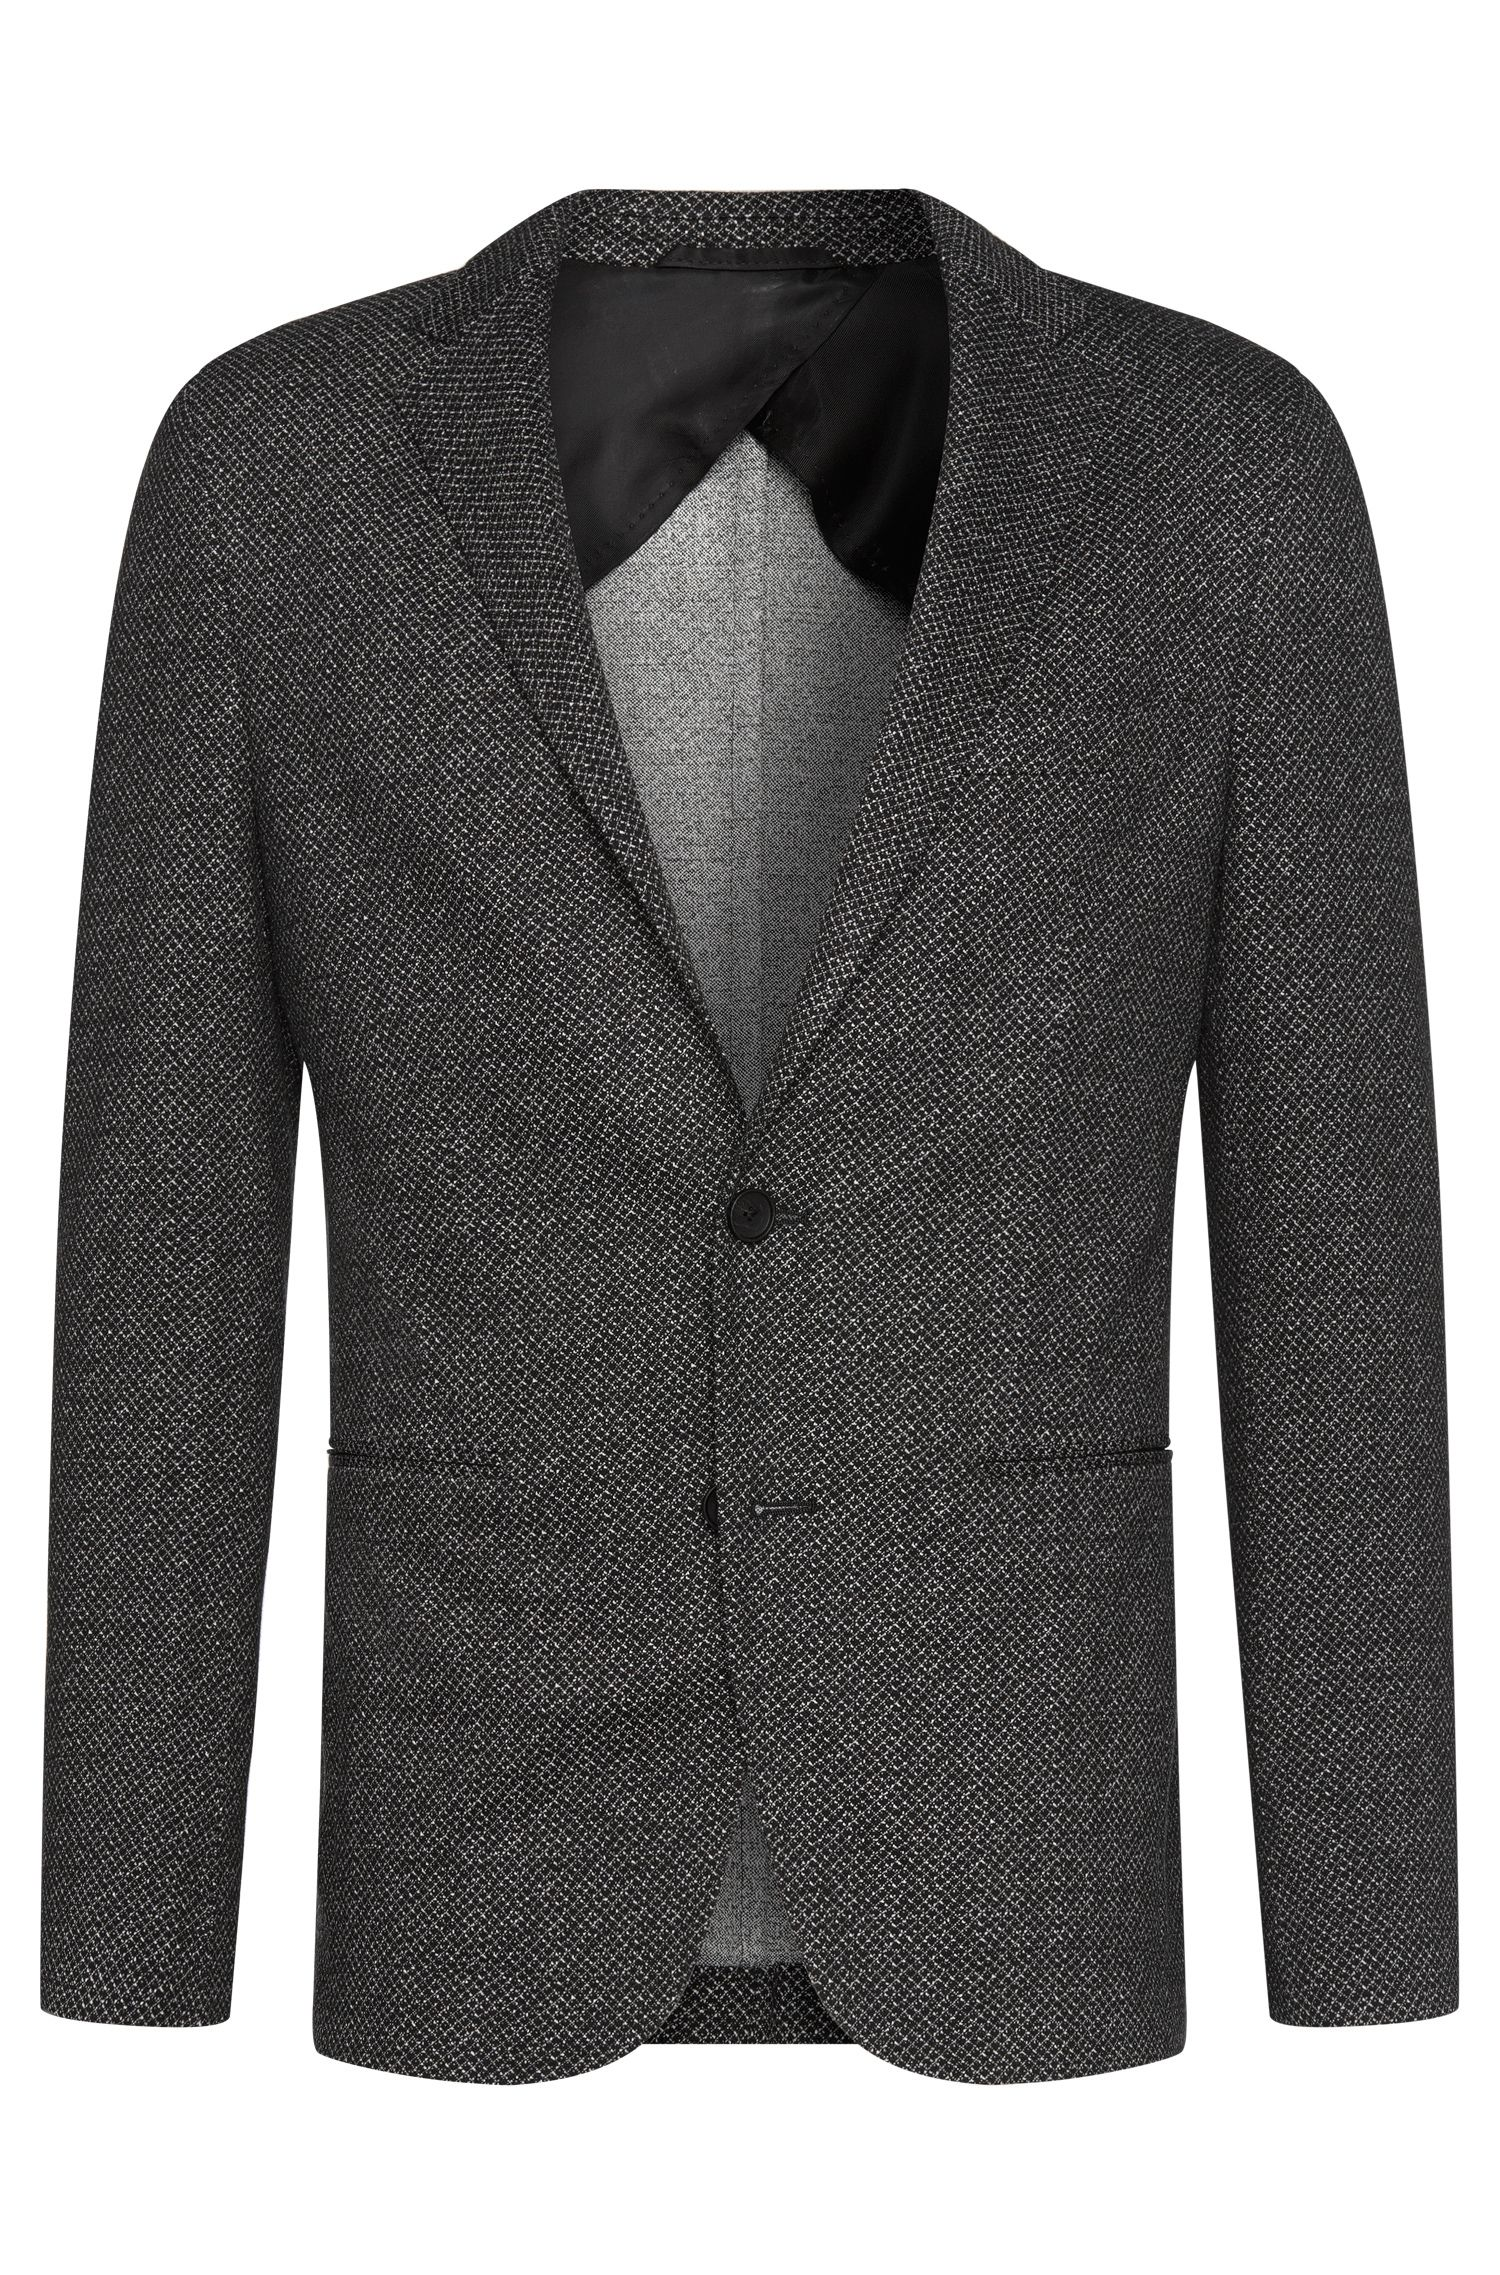 Veste de costume Slim Fit à motif en viscose stretch : « Norwin1 »